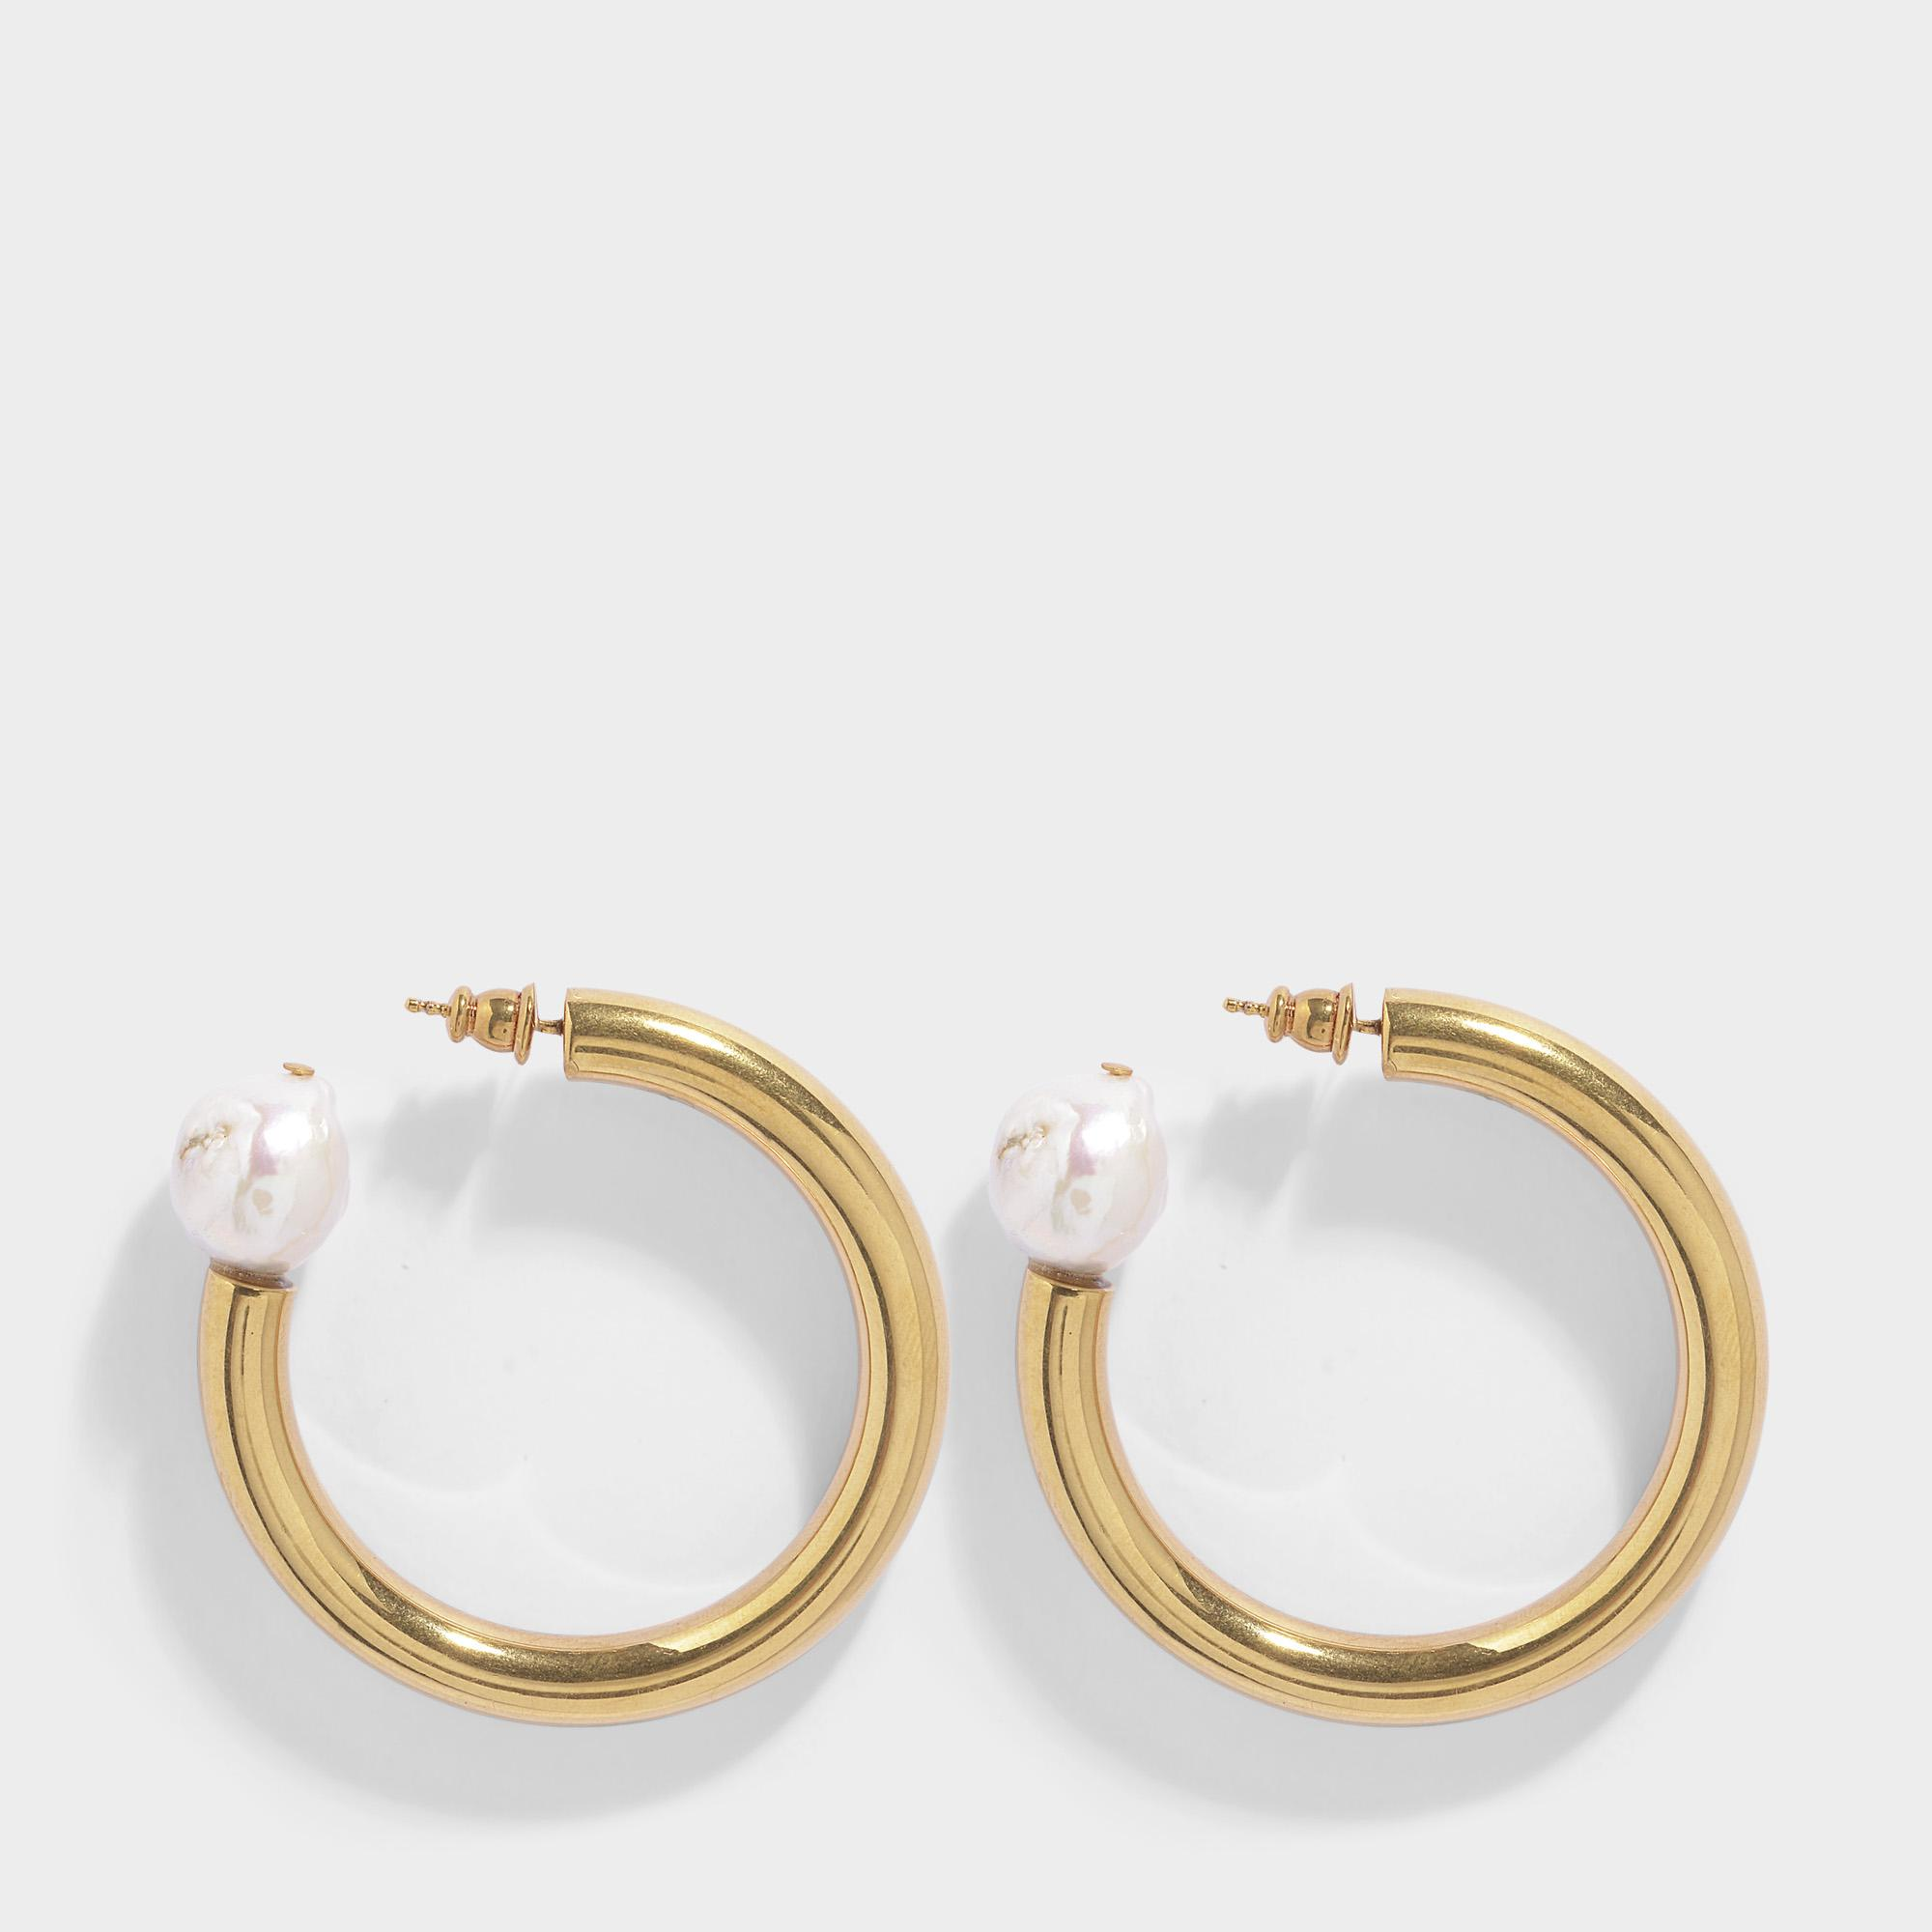 Sonia Rykiel Loop Earrings with a Pearl in Gold Brass and Pearl wkgcs